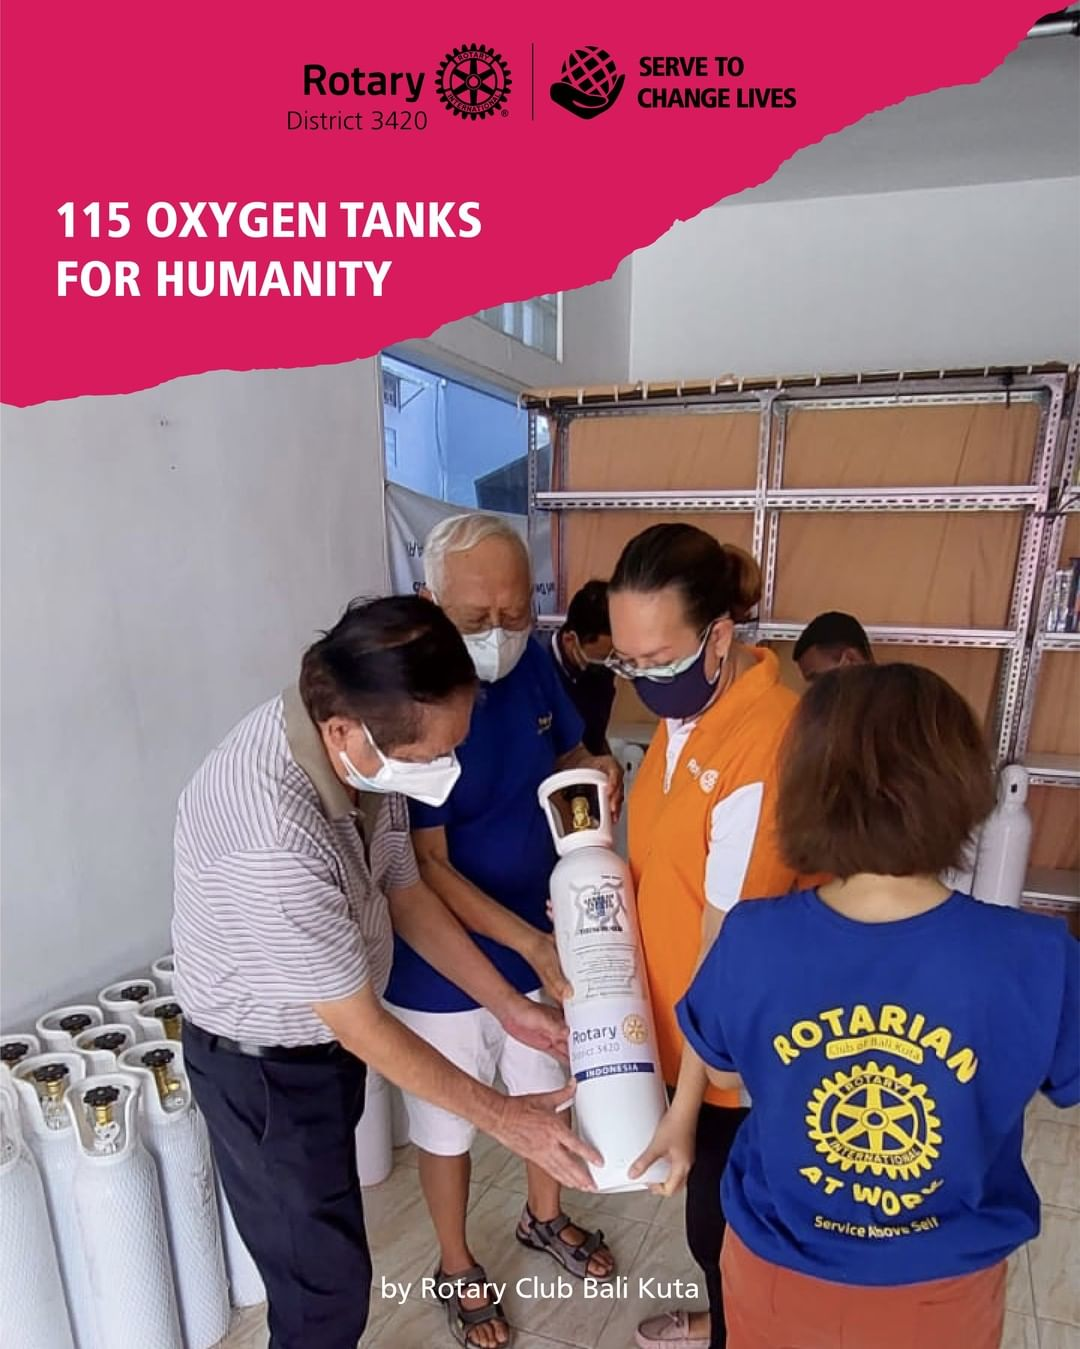 115 Oxygen Thanks for Humanity